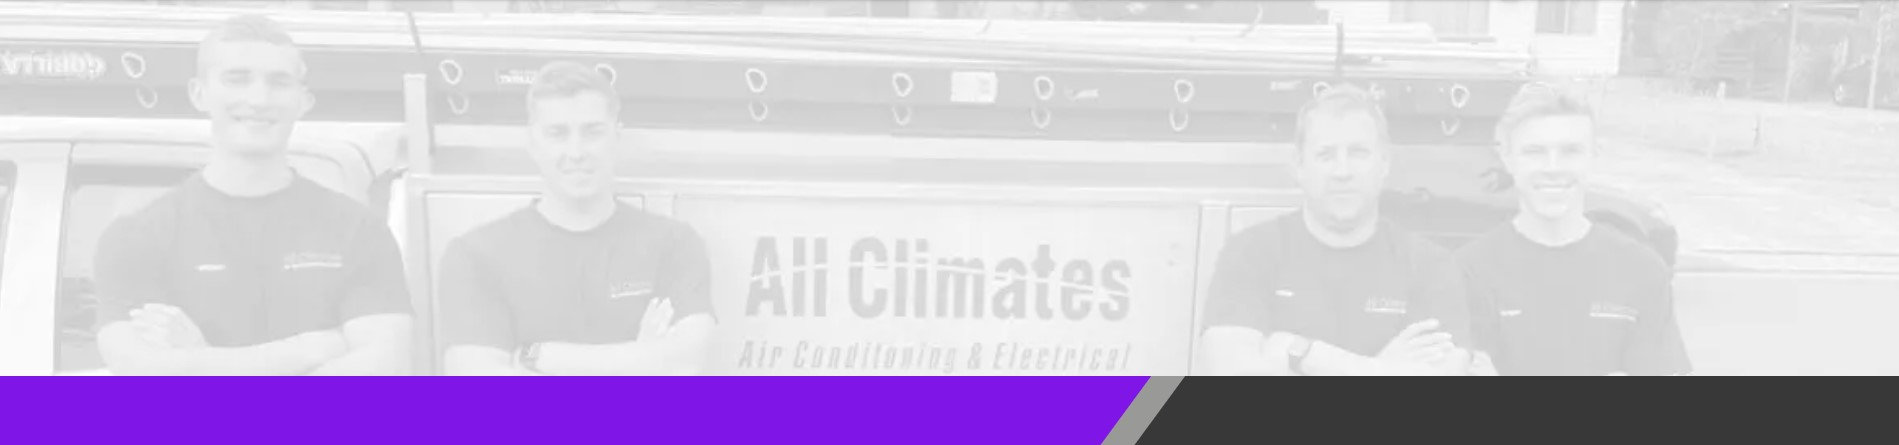 air conditioning and electrician kellyville